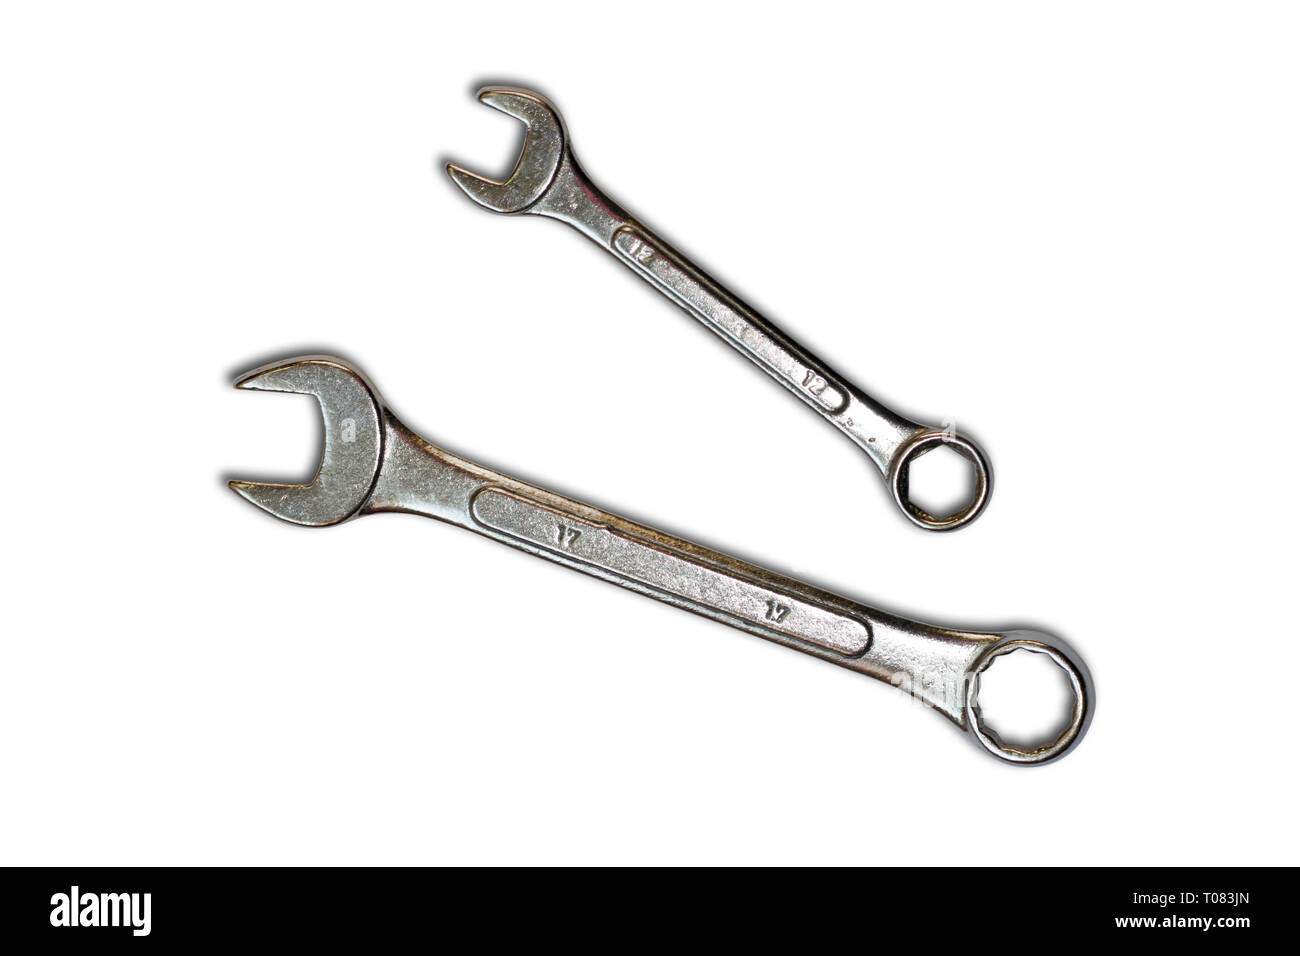 Two Wrenches isolated on a white backgound - Stock Image